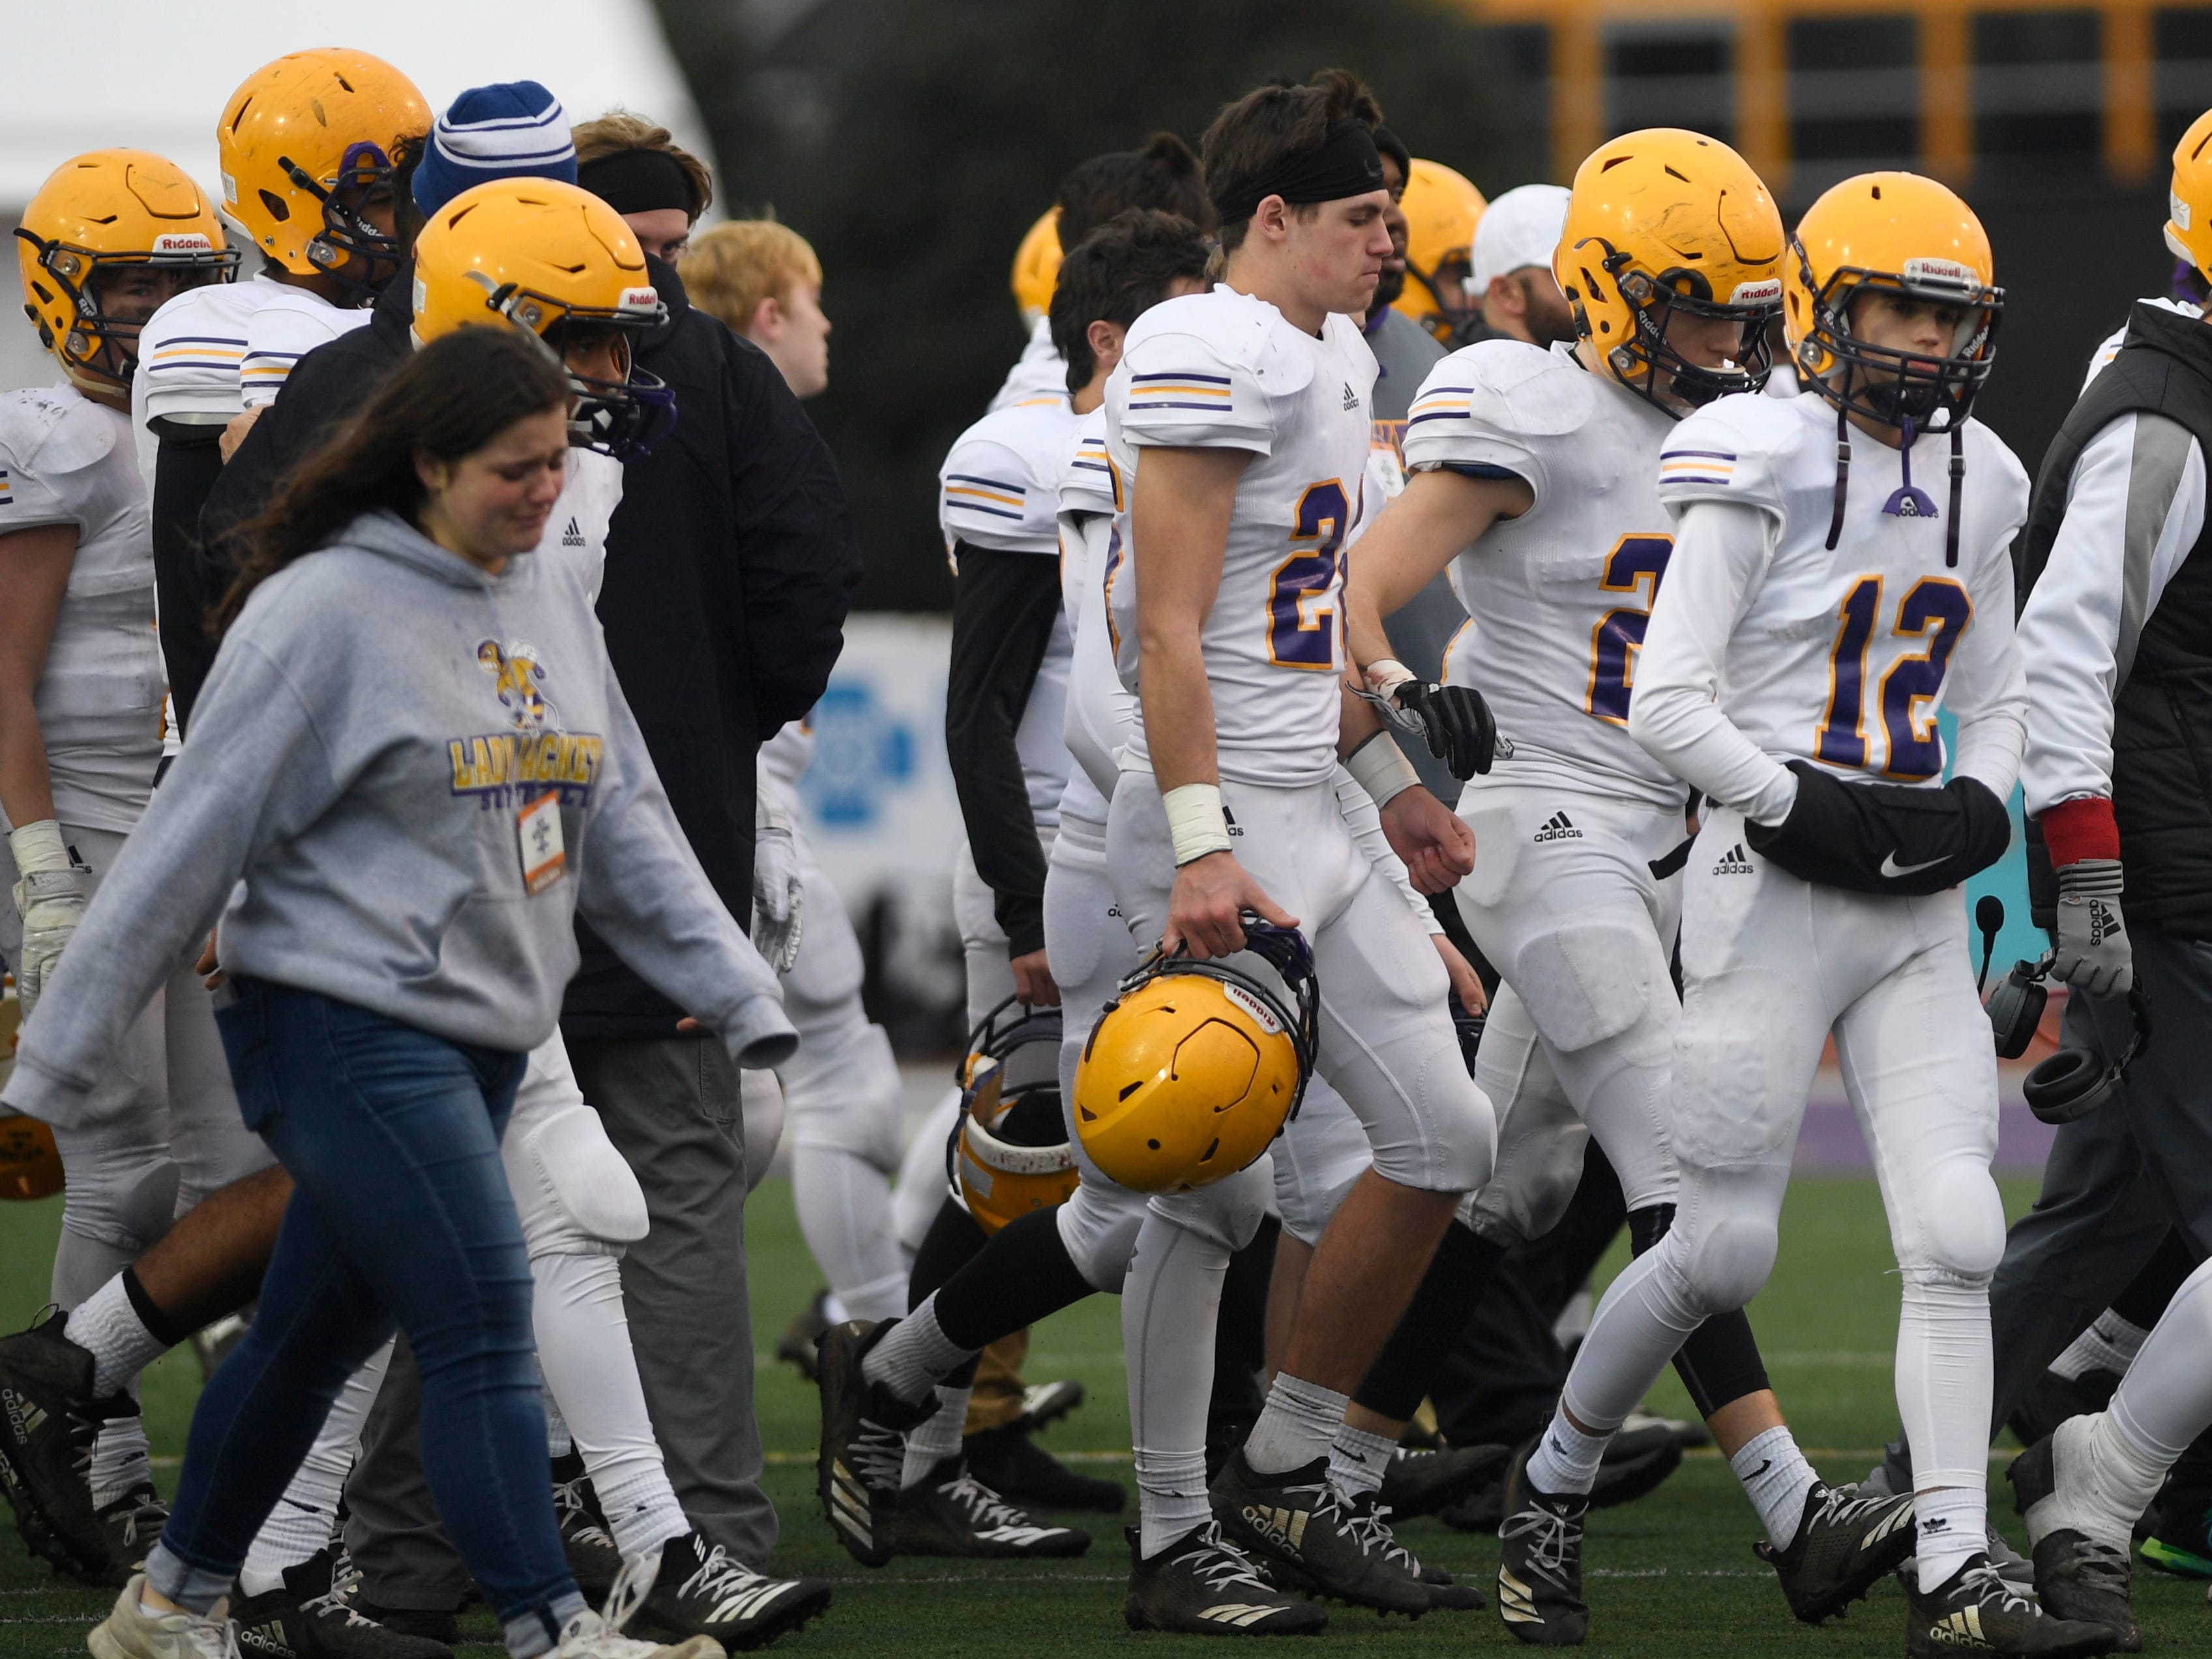 Trousdale walks off the field after the team's loss to Peabody in the Class 2A BlueCross Bowl state championship at Tennessee Tech's Tucker Stadium in Cookeville, Tenn., on Thursday, Nov. 29, 2018.